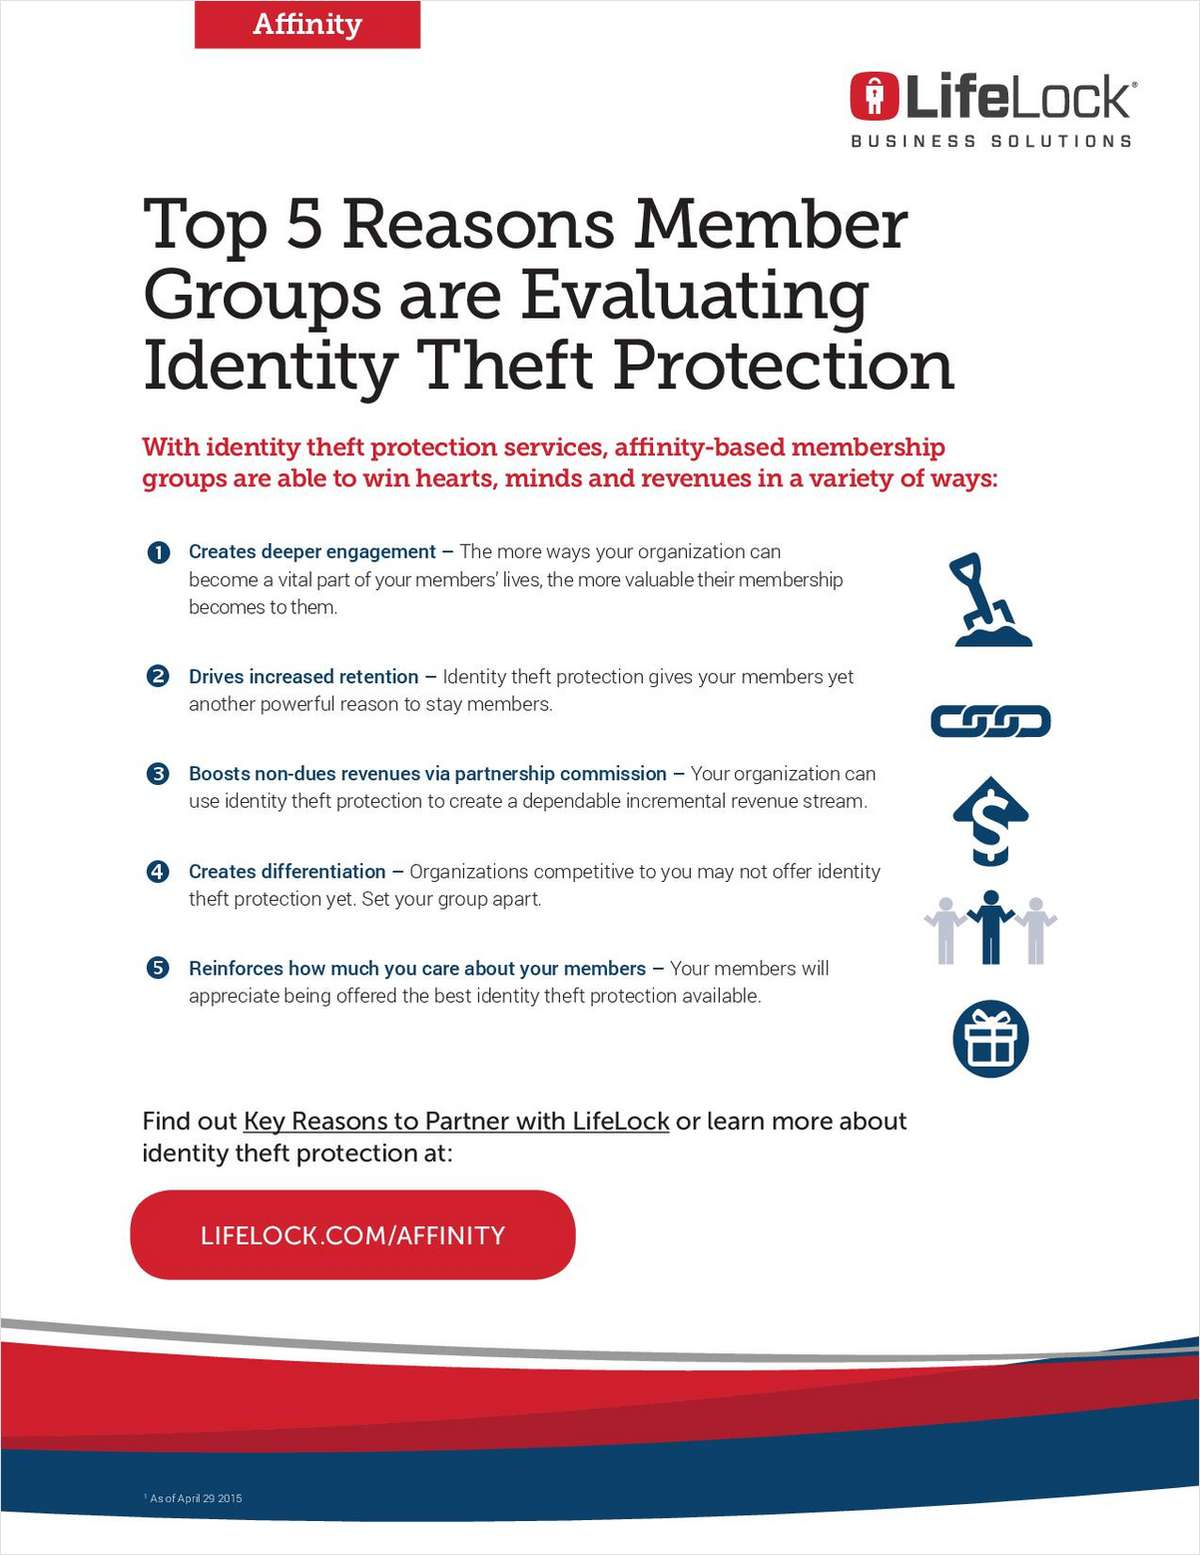 Top 5 Reasons Member Groups Are Developing Affinity For LifeLock